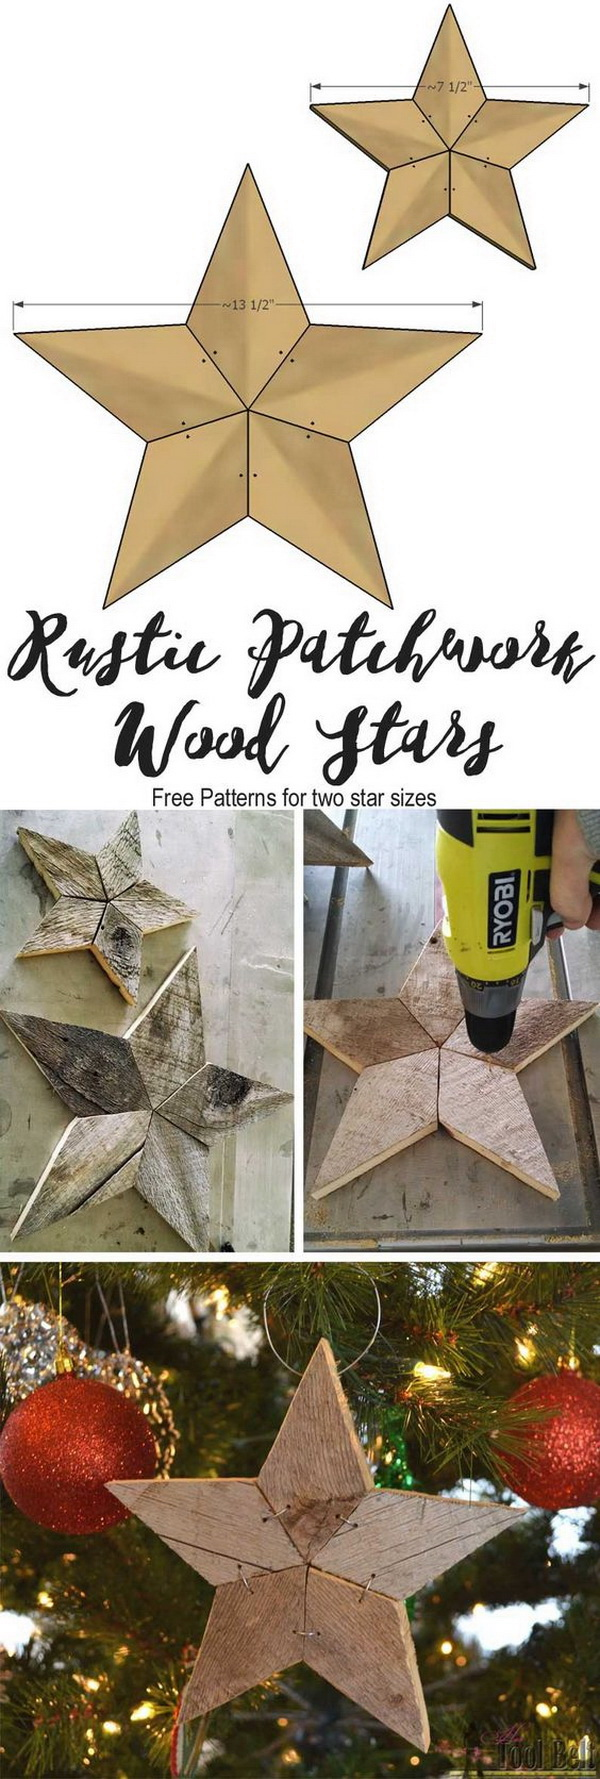 Rustic Patchwork Wood Star Ornaments. Make these fun rustic patchwork stars out of barn wood and add some natural elements into your Christmas decor.